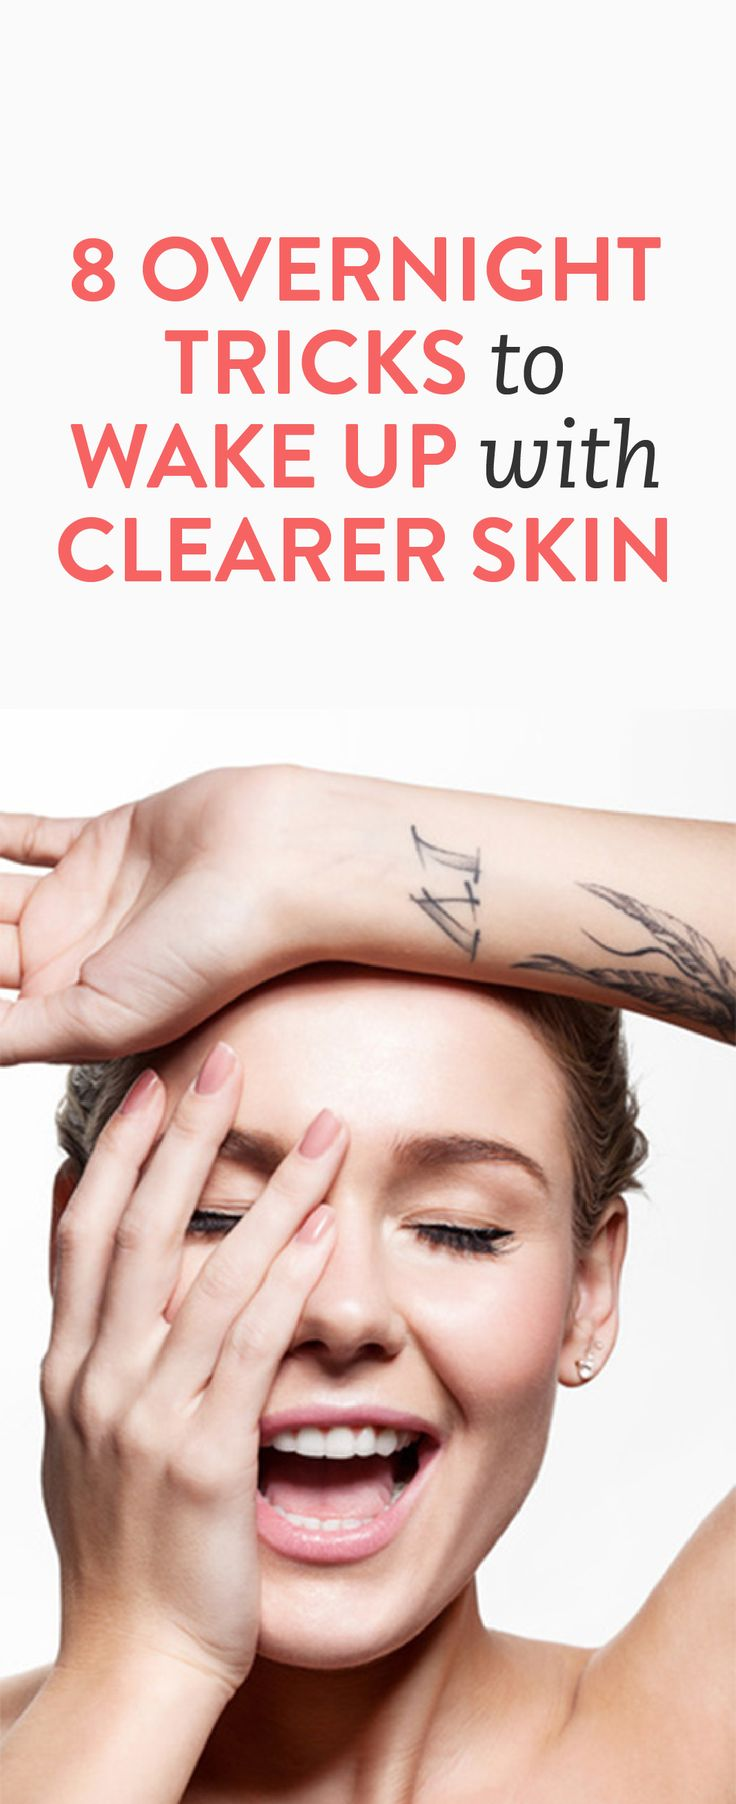 8 Overnight Tricks to Wake Up with Clearer Skin #Beauty #Tips #Advice